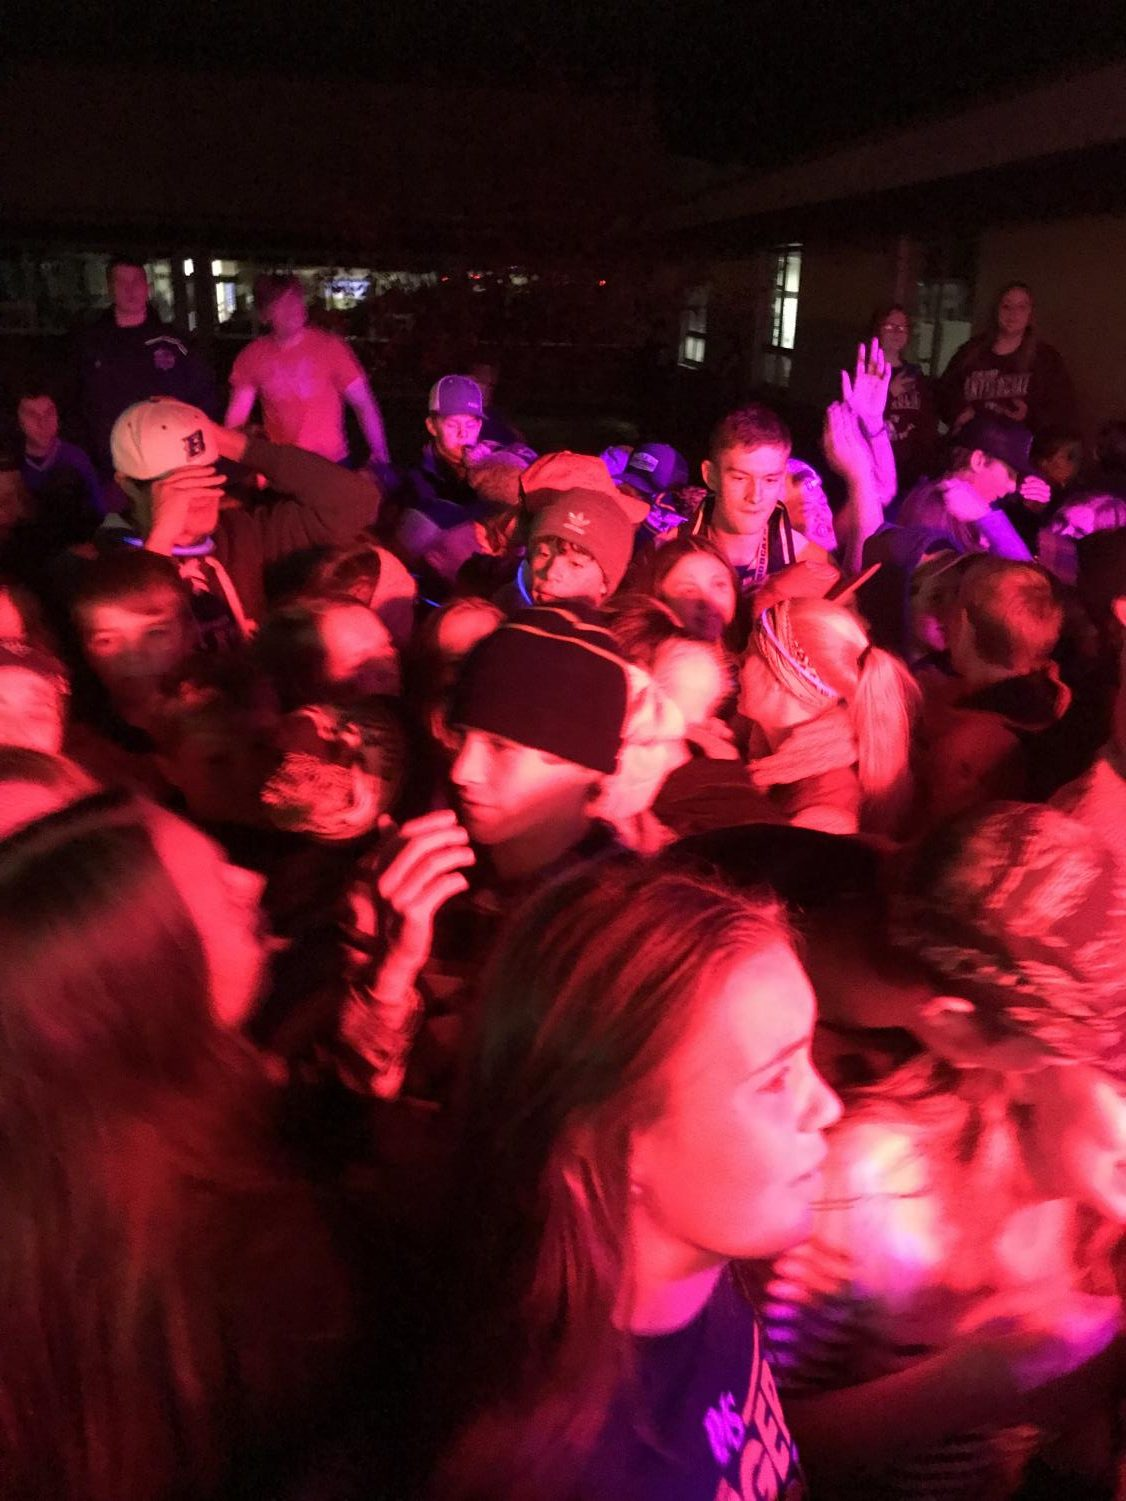 Students are bathed in the purple light as they dance to Thrift Shop by MackelMore